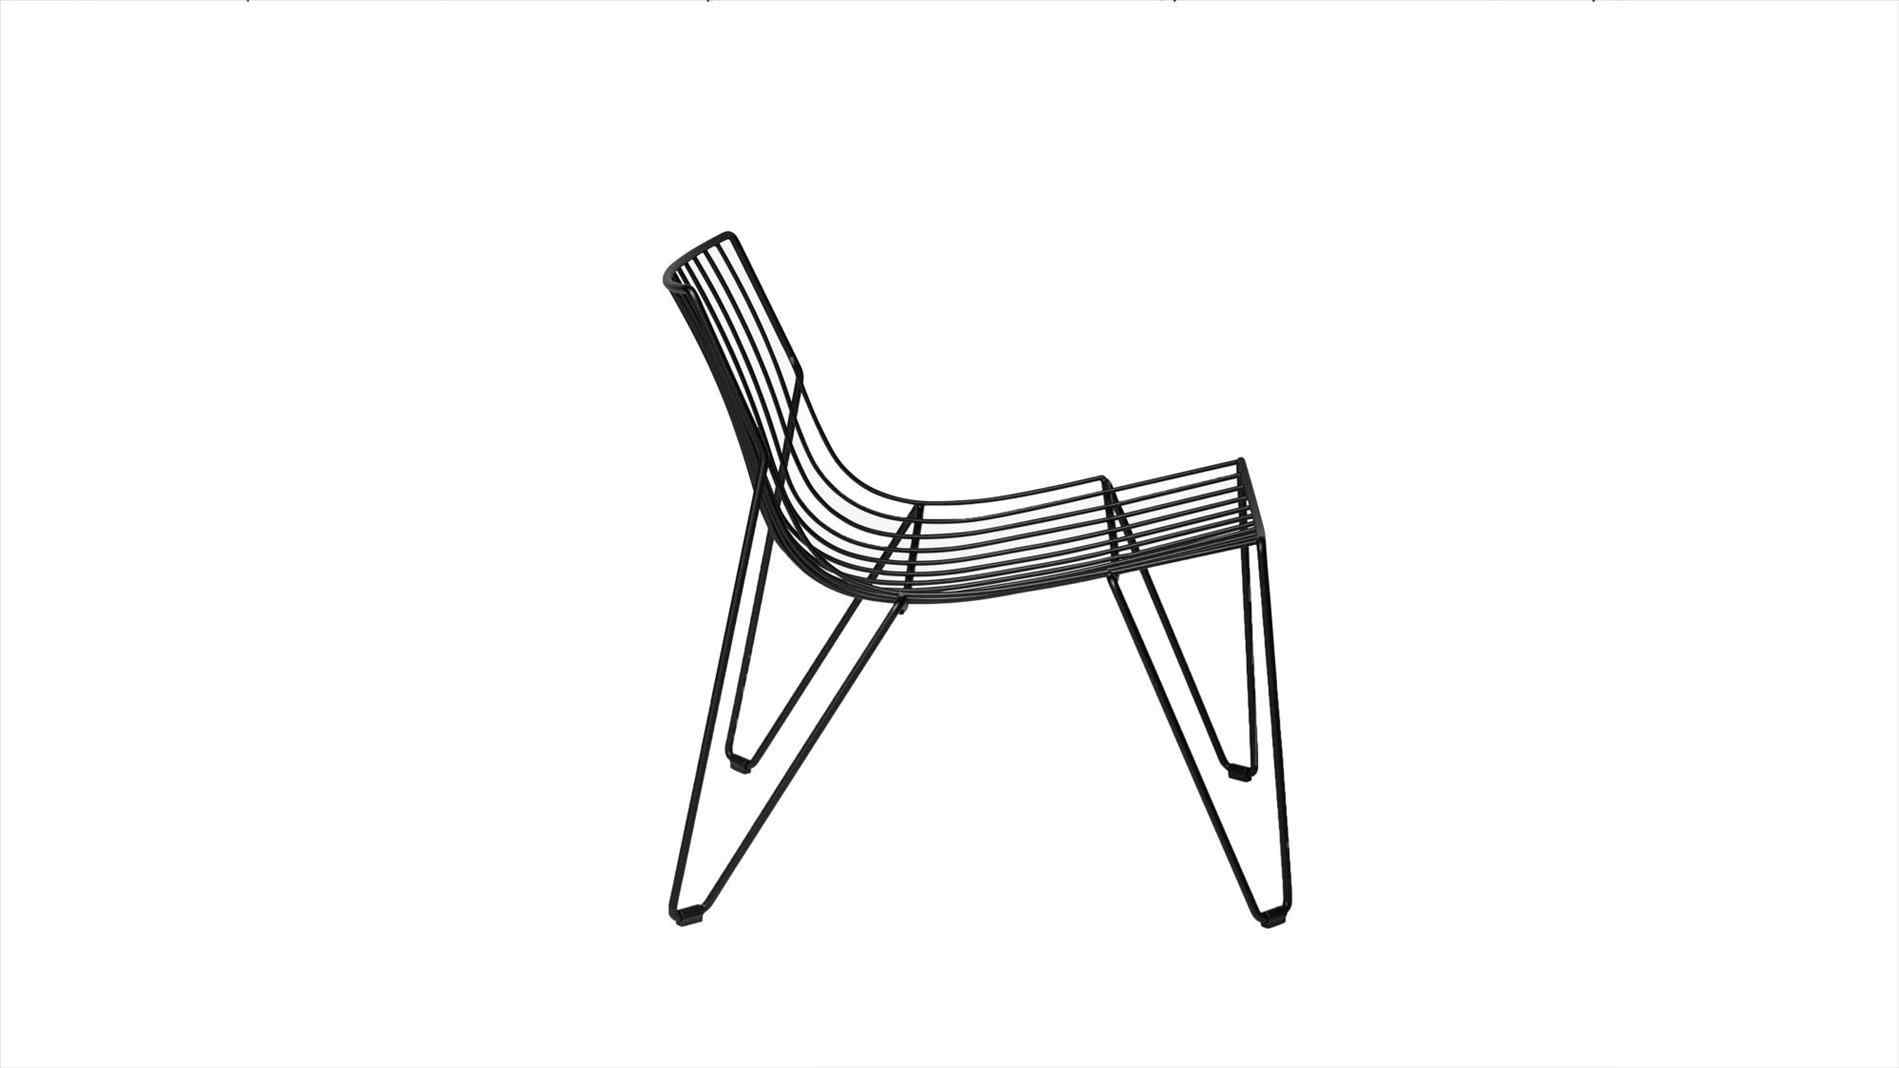 drawing of a chair rocking chair drawing free download on clipartmag drawing chair a of